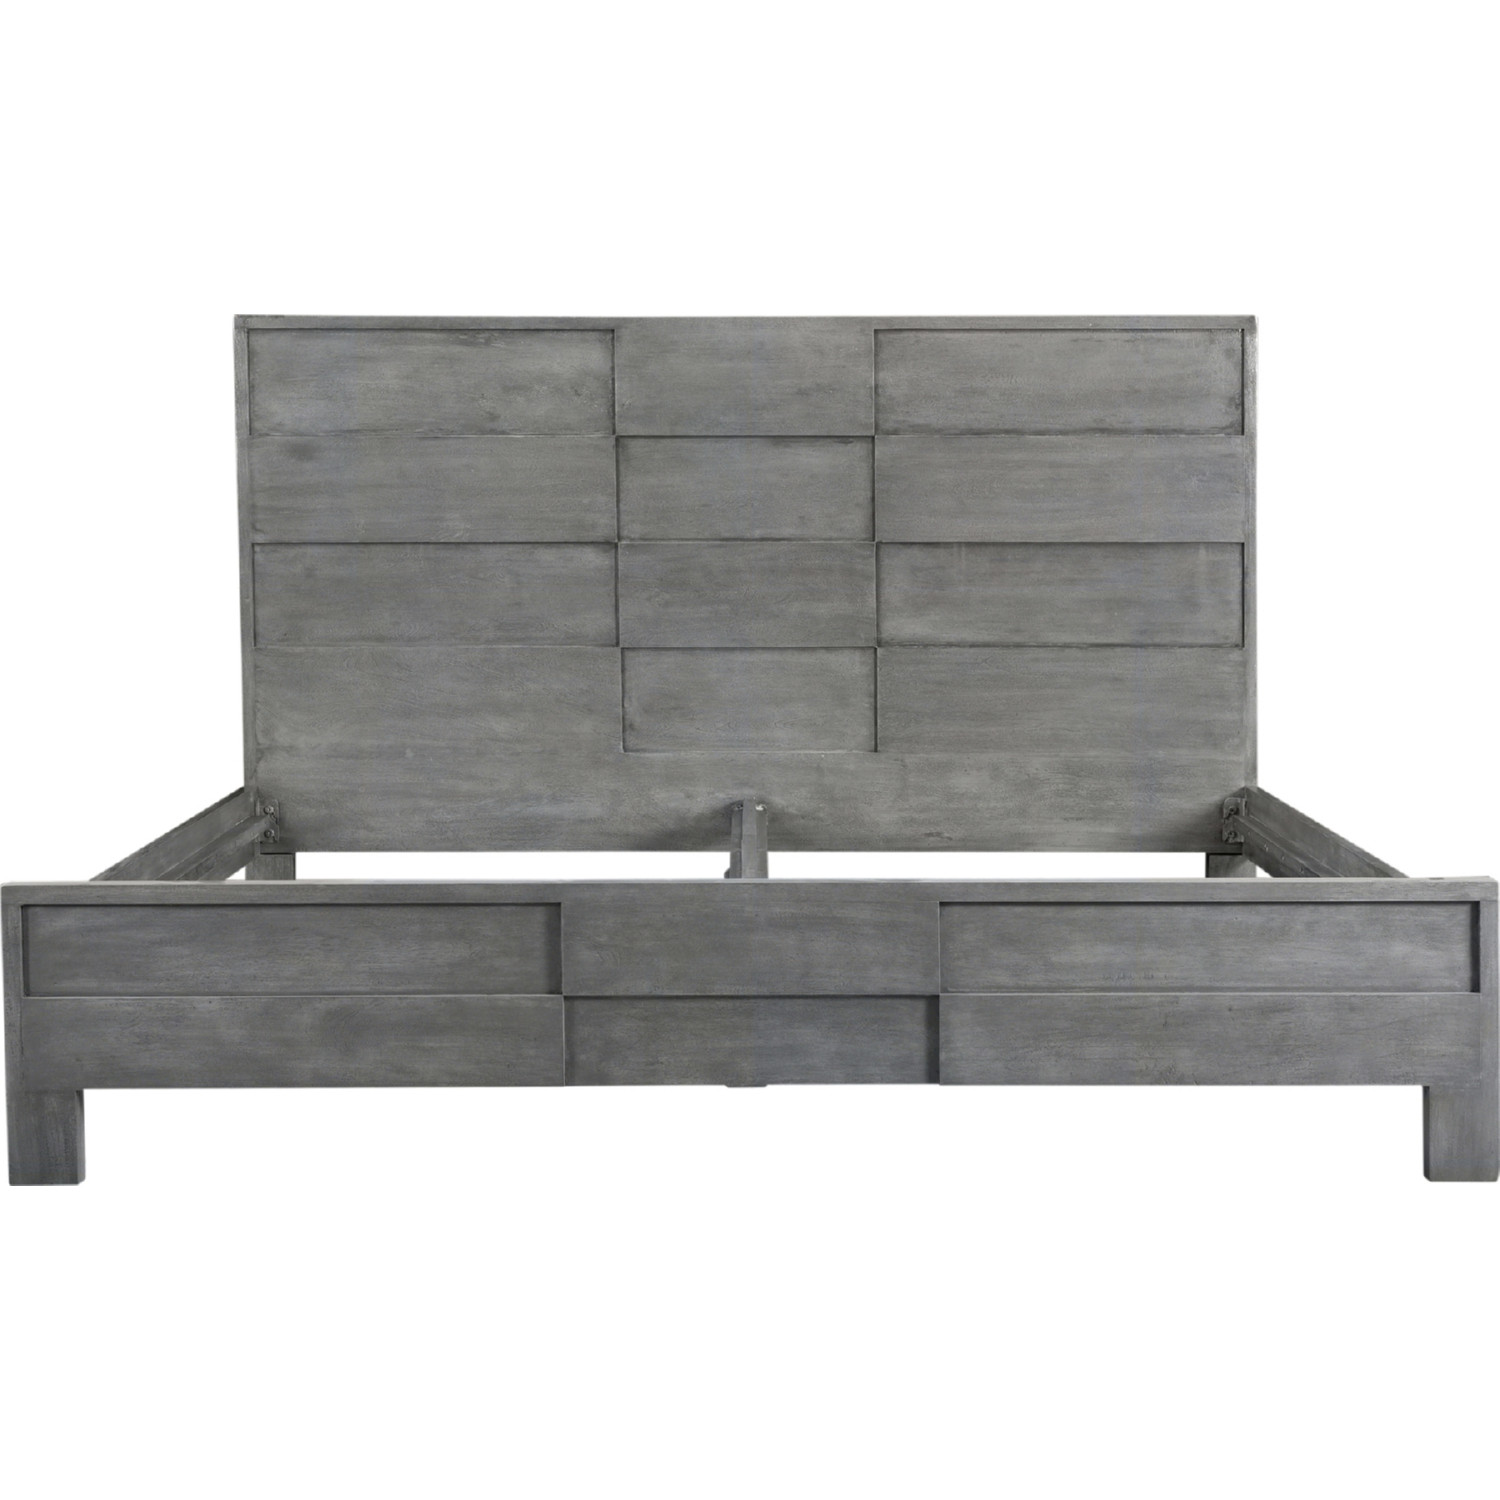 Sensational Felix King Bed In Grey Acacia Wood By Moes Home Collection Caraccident5 Cool Chair Designs And Ideas Caraccident5Info